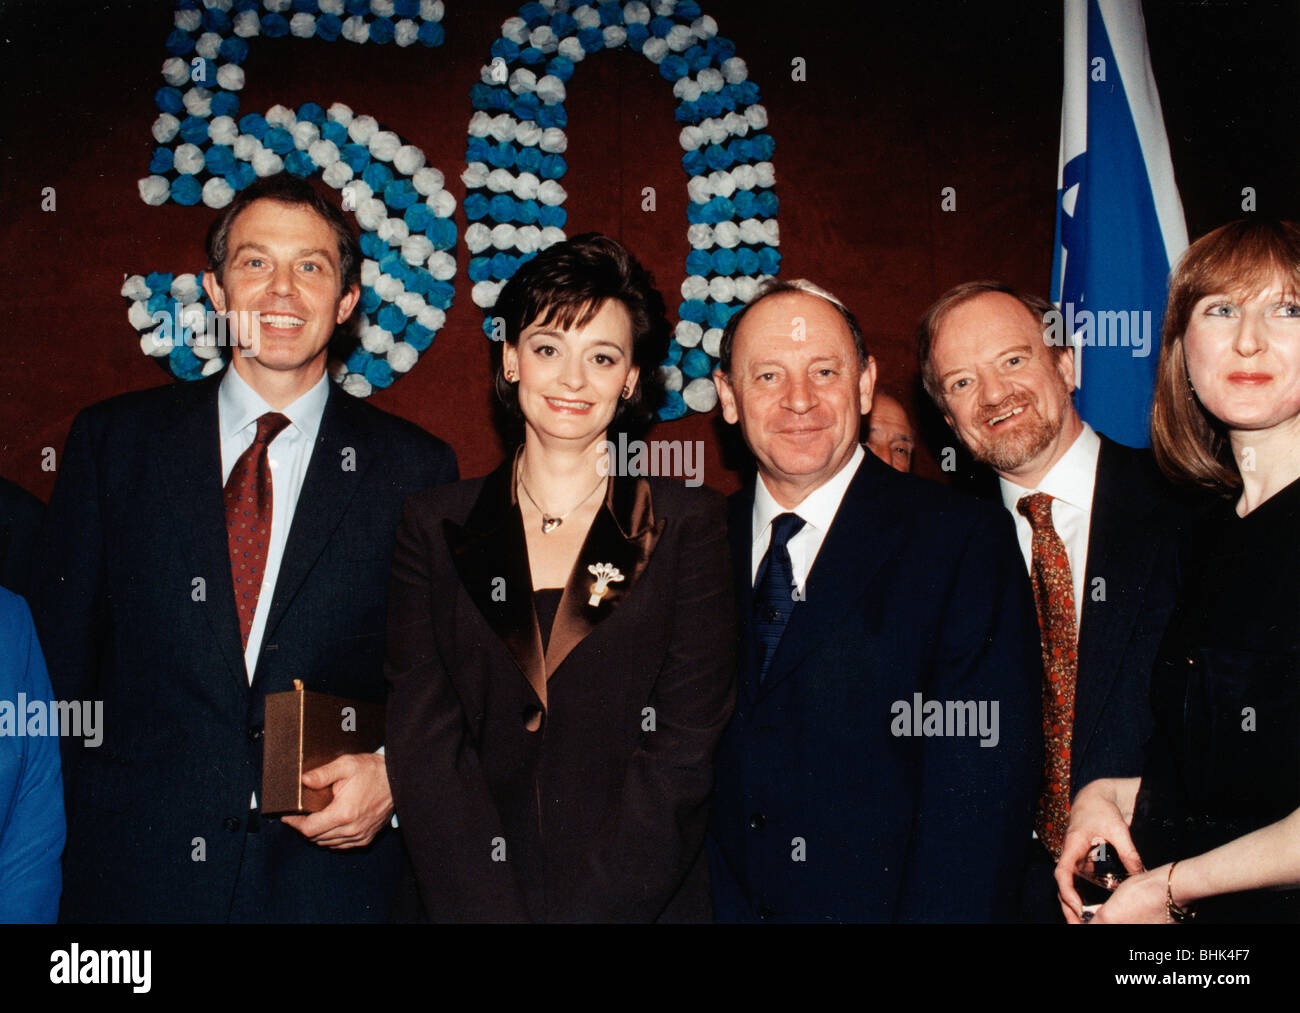 Robin Cook (1946- ), Tony Blair (1953- ) and Cherie Blair at a ceremony, 1998. Artist: Sidney Harris - Stock Image